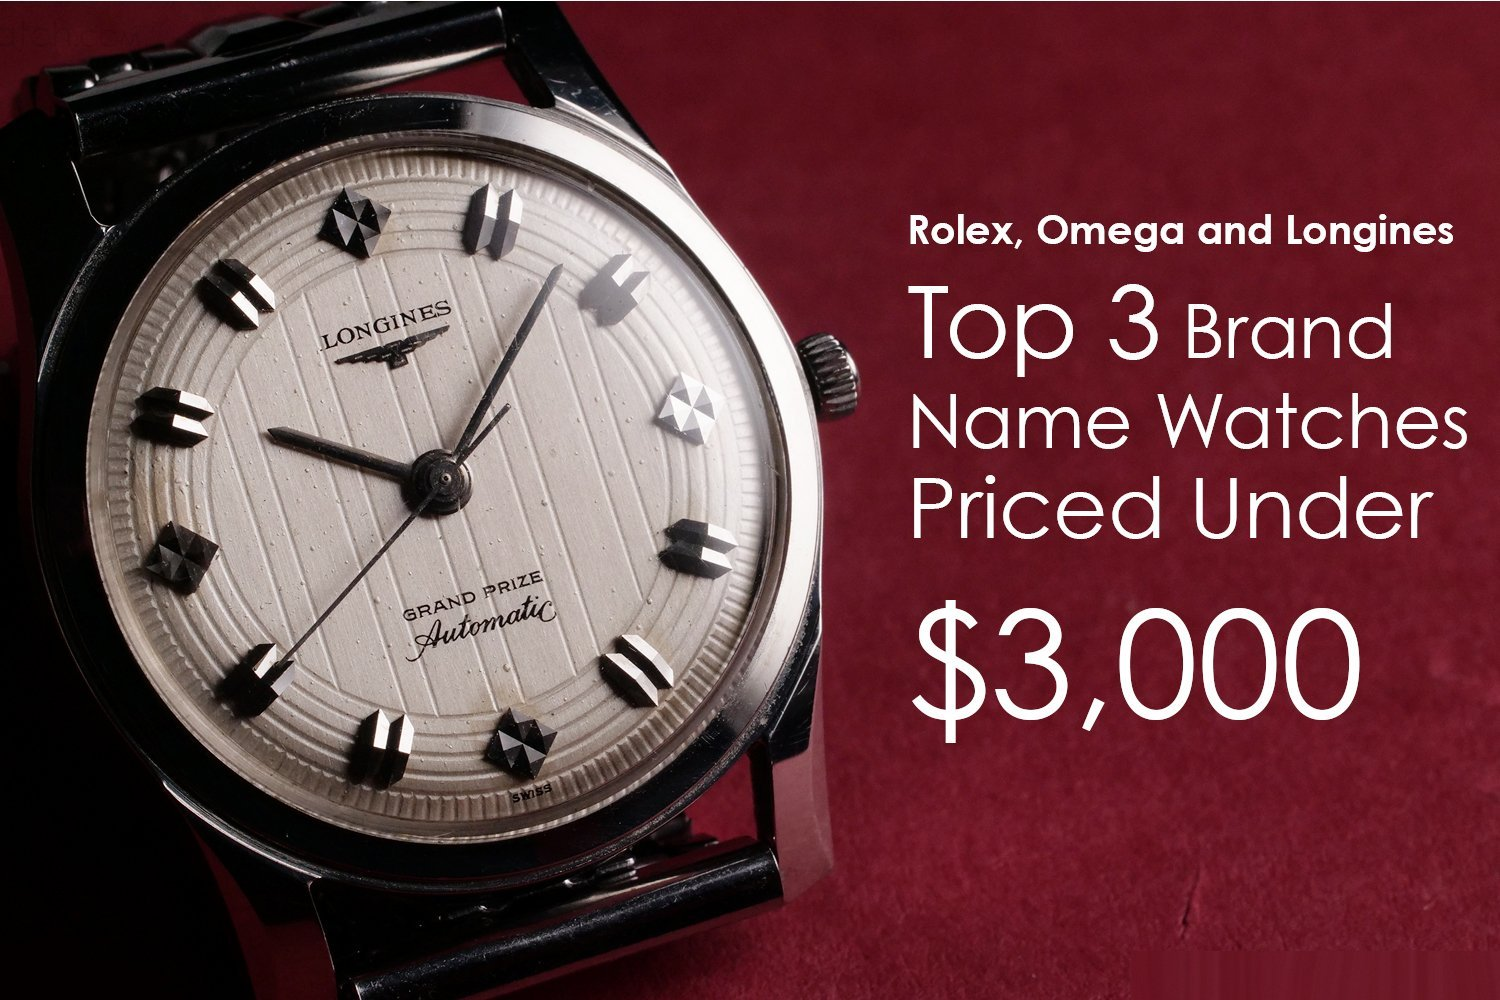 Top 3 Brand Name Watches Priced Under $3,000